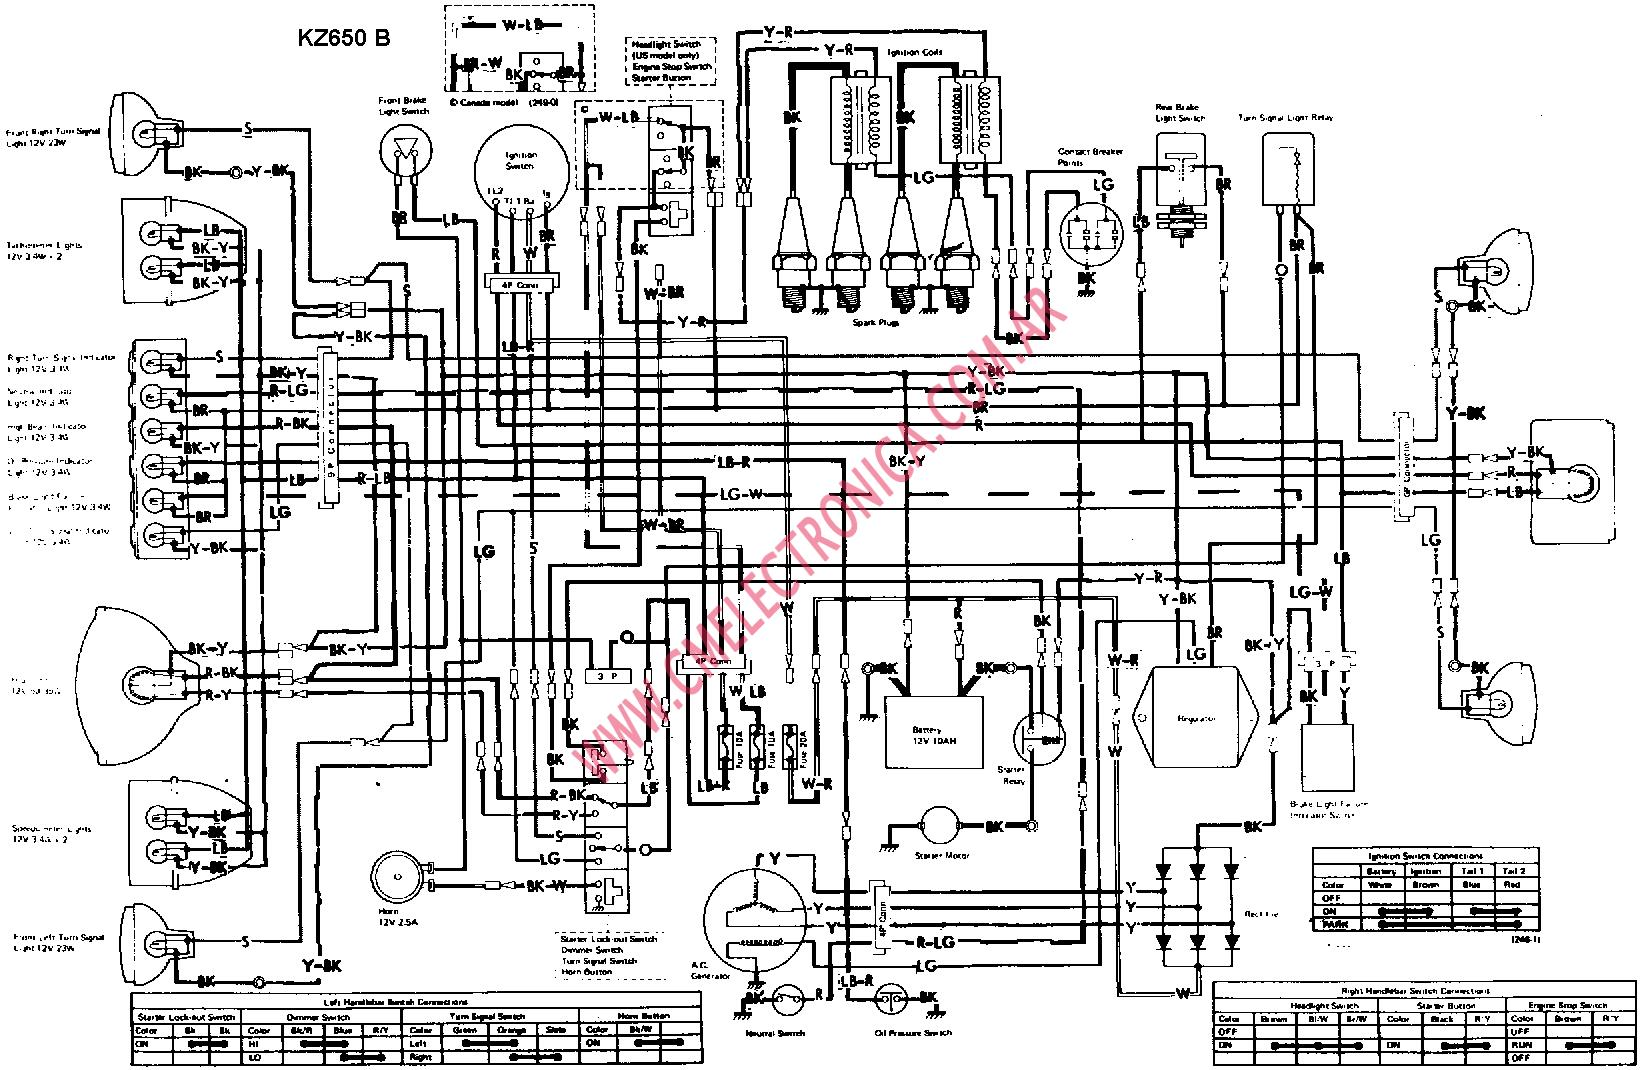 Cagiva moreover 2006 Yamaha Rhino Wiring Diagram moreover 02 Grizzly Cdi Box Wiring Diagram further 2000 Yamaha Kodiak 400 4x4 Wiring Diagram in addition Parts. on yamaha grizzly 350 wiring diagram